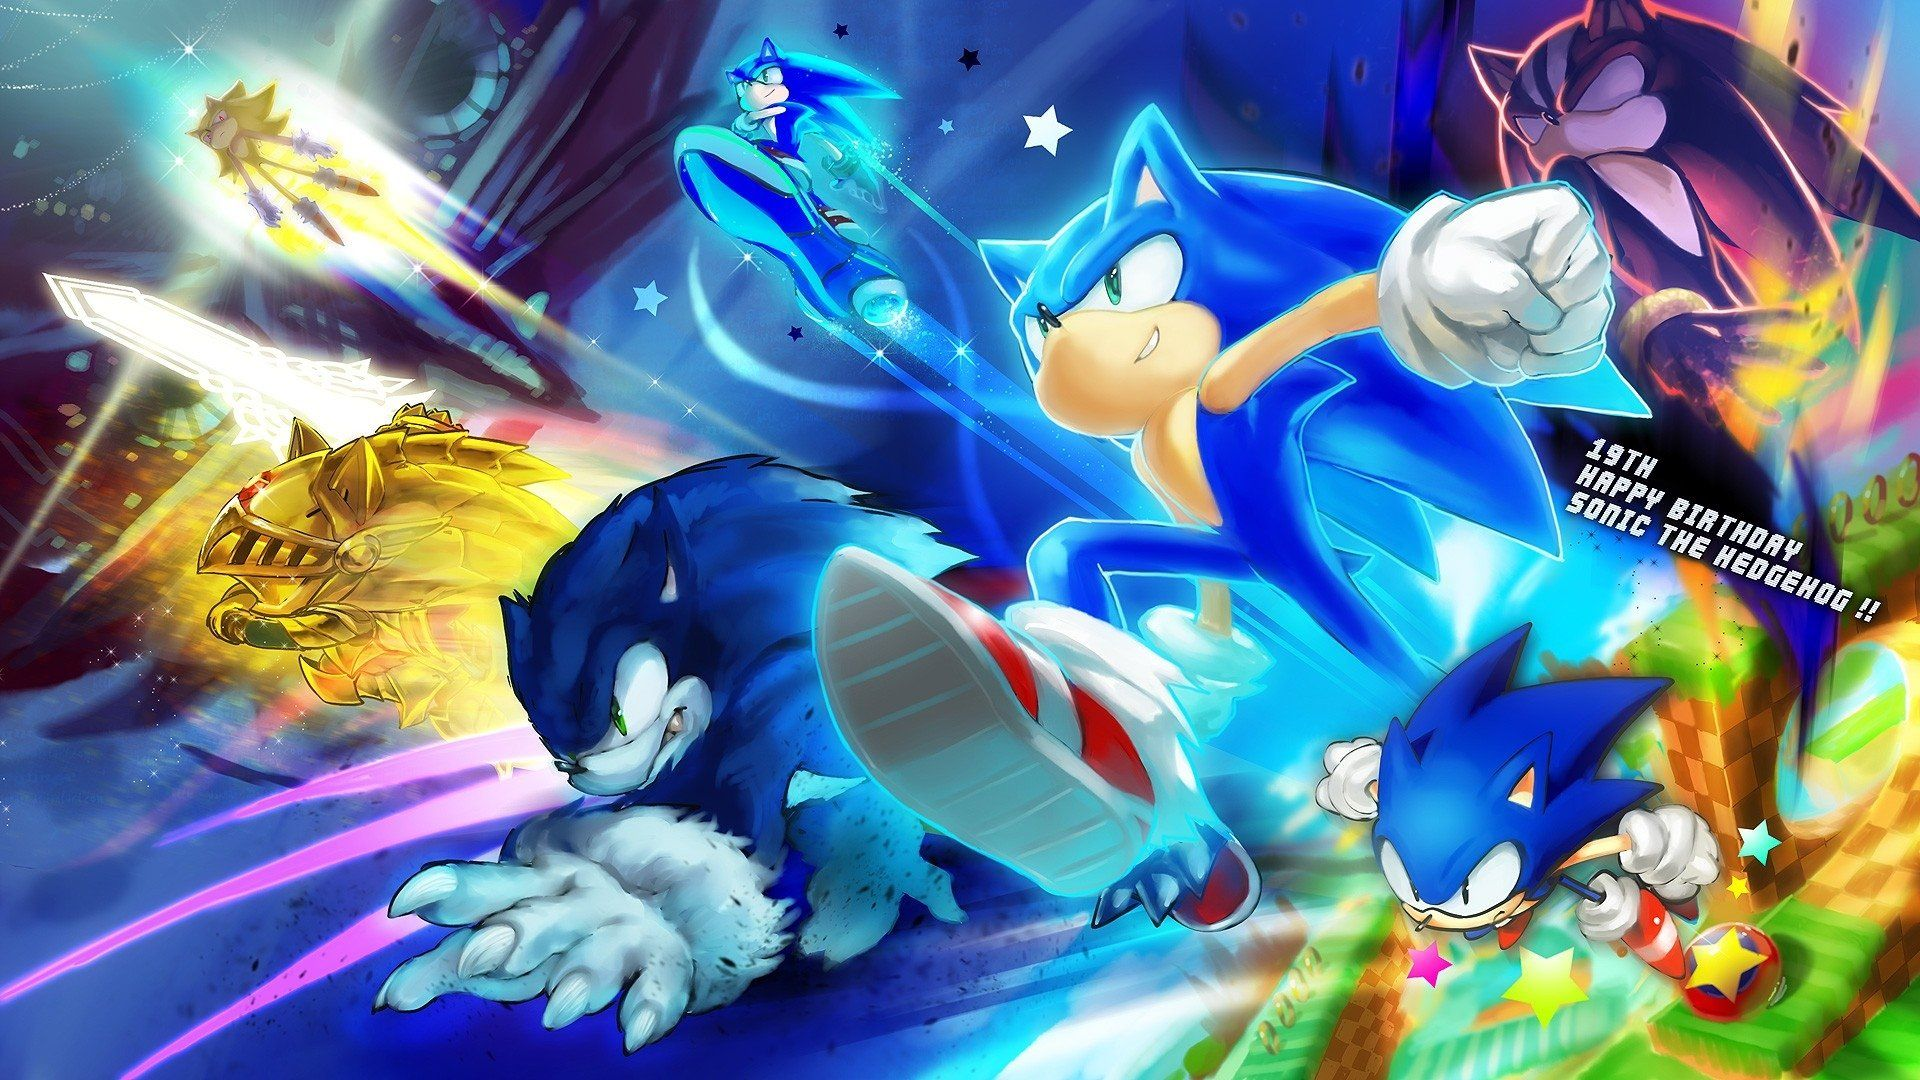 Sonic Wallpaper HD Cartoon wallpaper, Anime, Sonic fan art